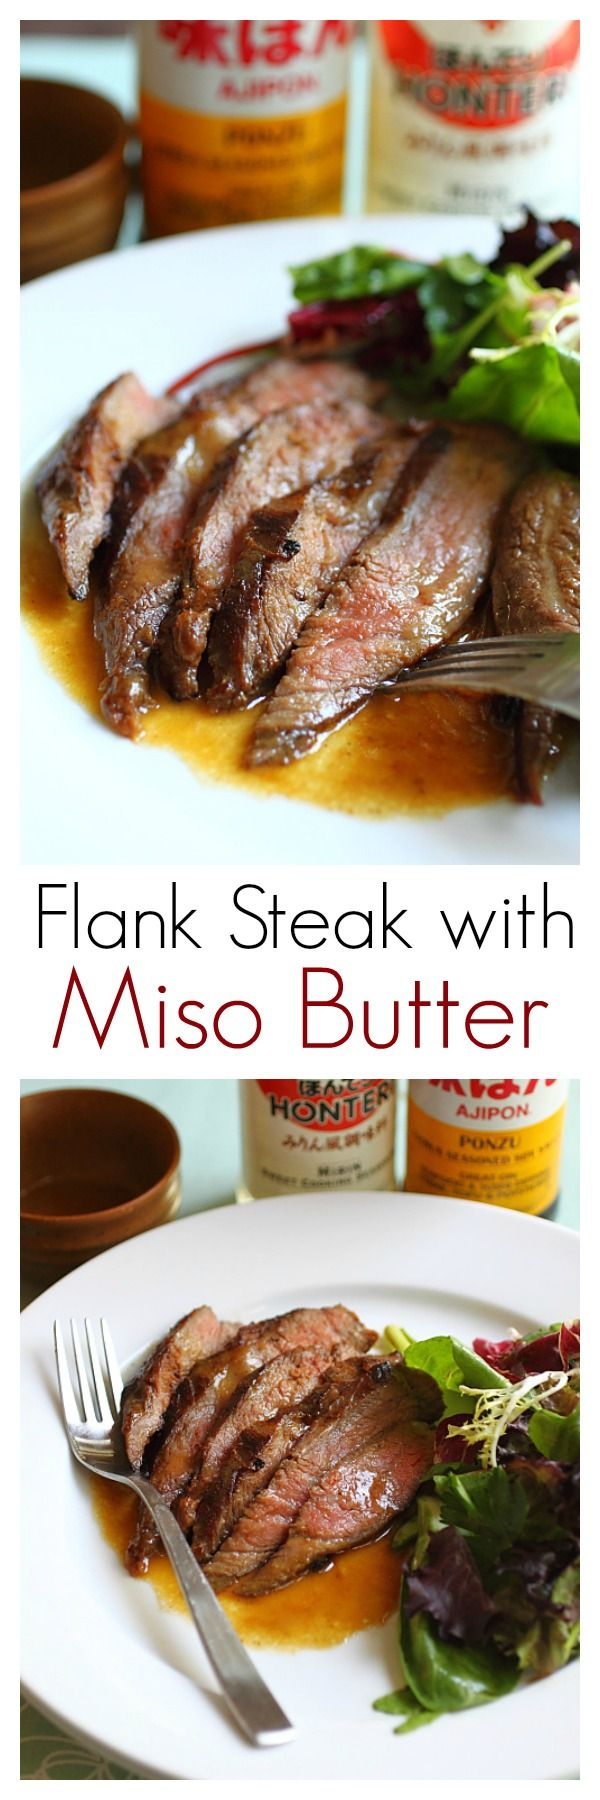 Flank Steak with Miso Butter - the most tender, juiciest, and delicious flank steak ever. Make it at home with this easy recipe | rasamalaysia.com